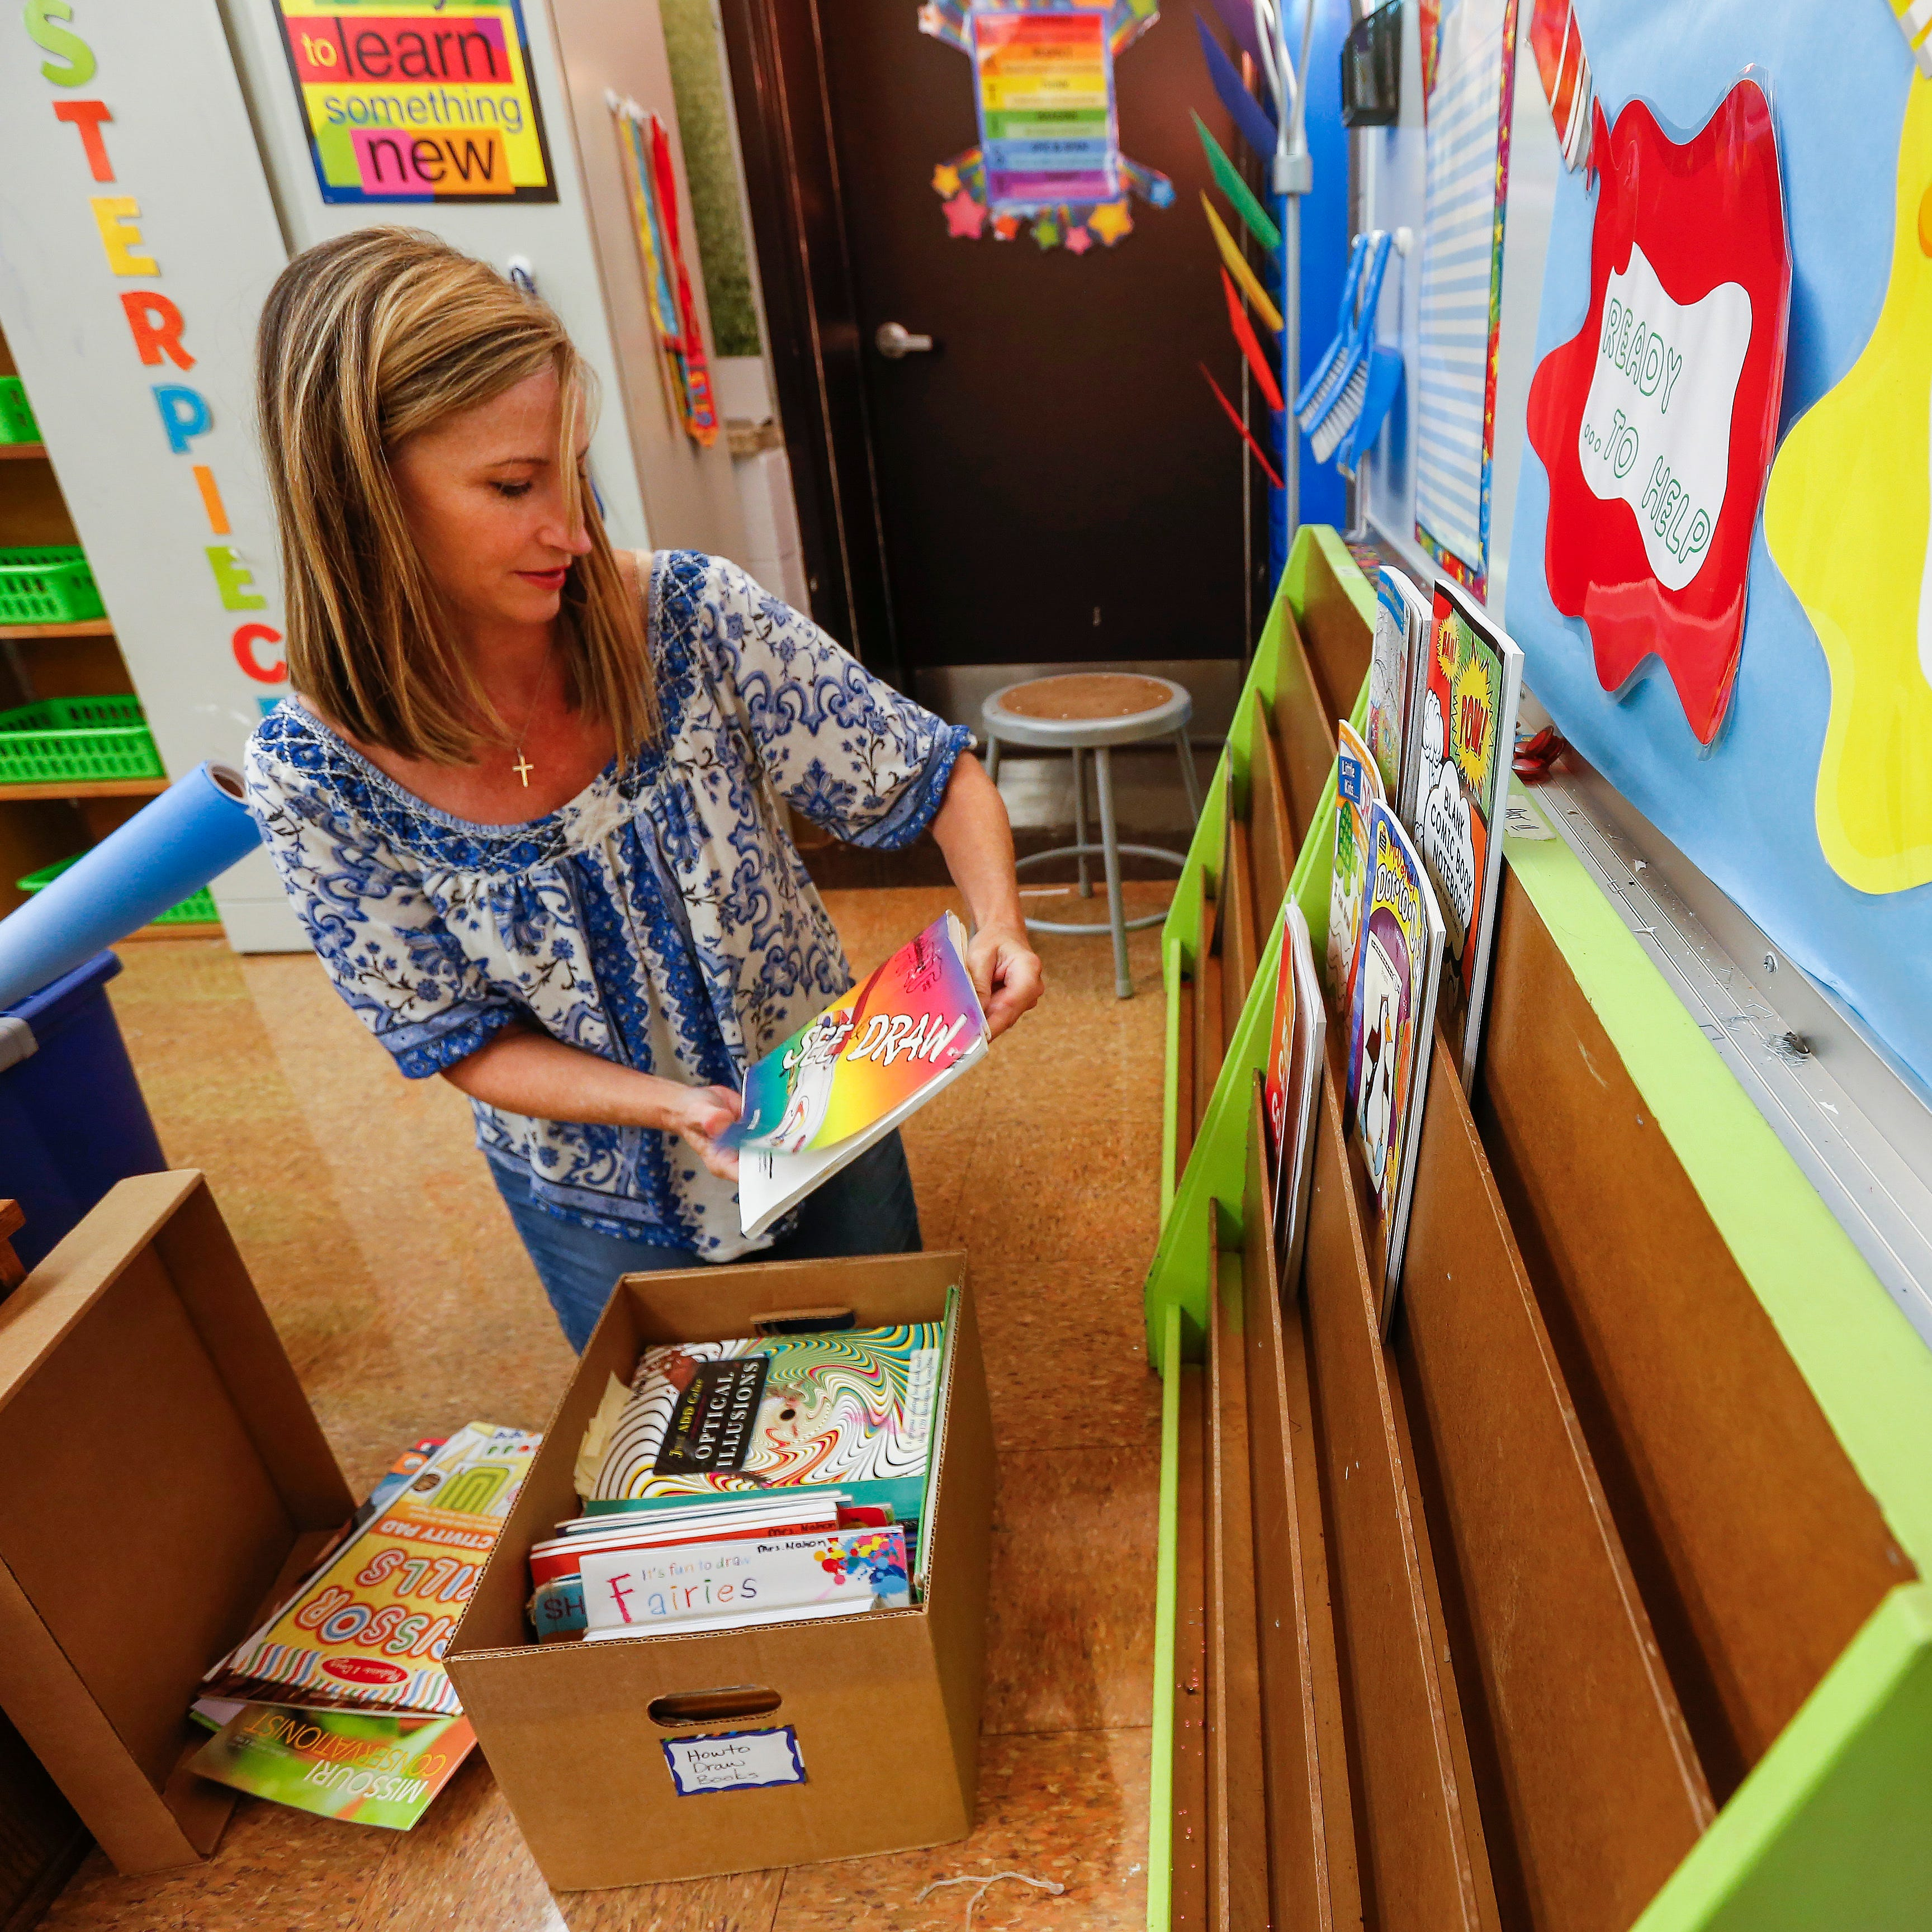 Angel Nahon, an art teacher at Jeffries Elementary School, gets her classroom ready for the first day of school.